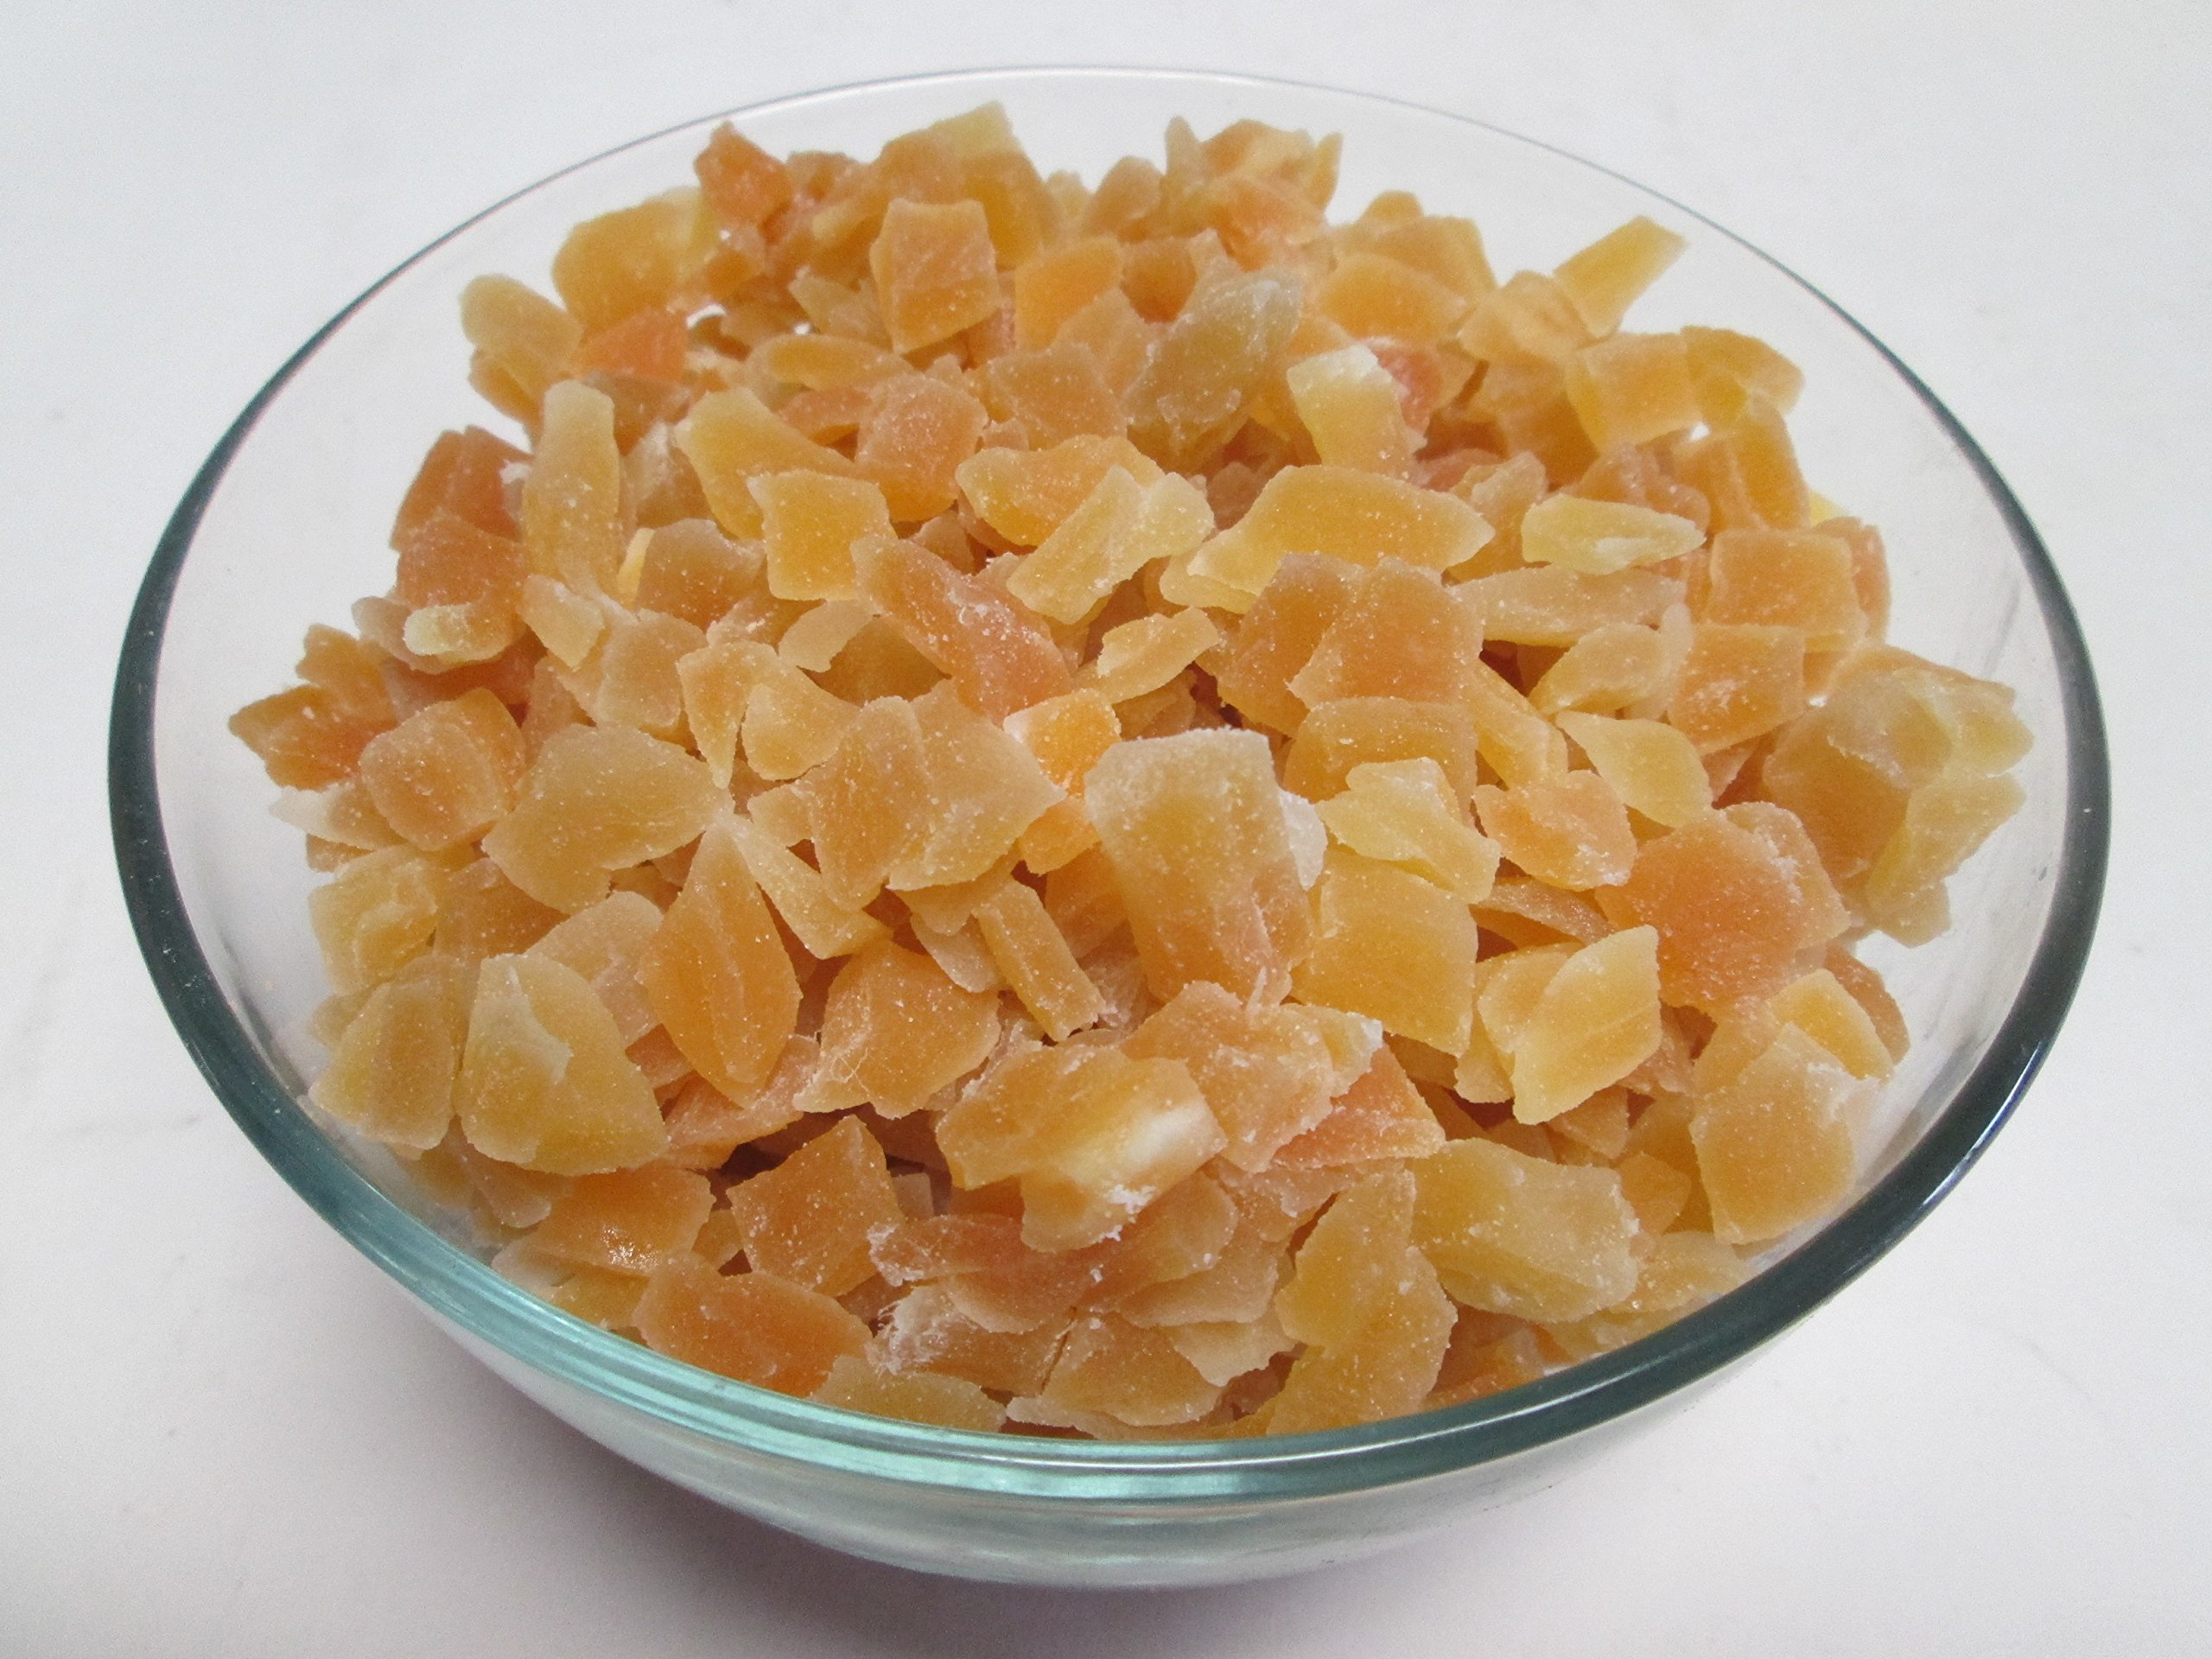 Dried Natural Mango Dices 6 lb-Candymax-5% off purchase of 3 any items!